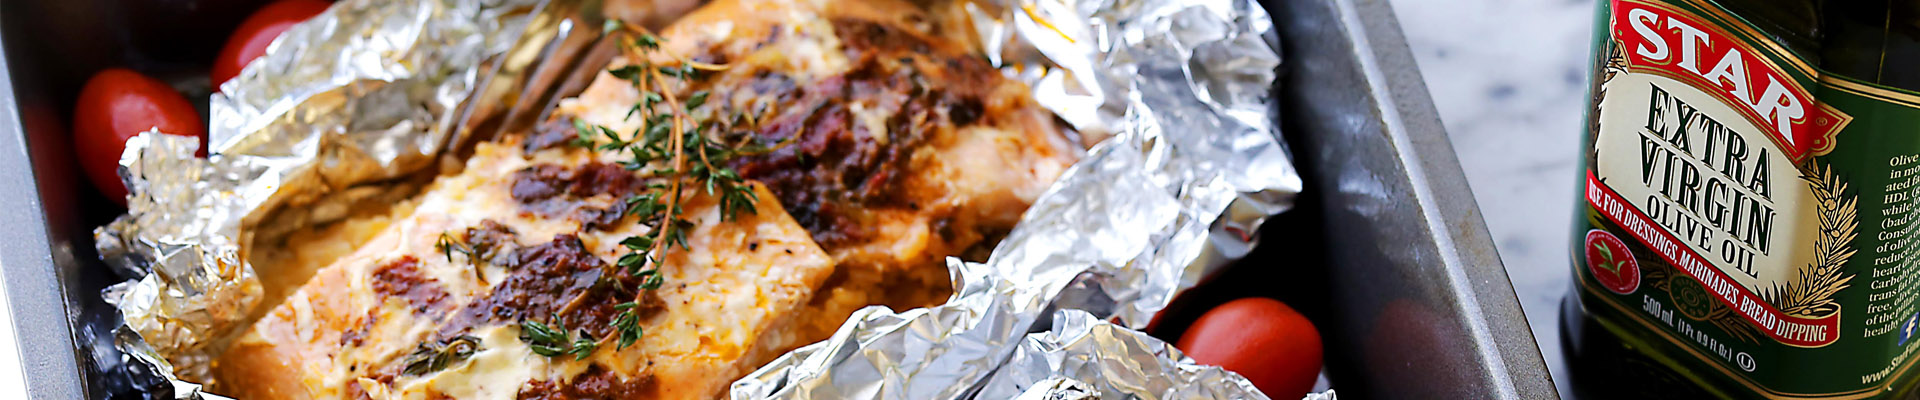 Foil-Baked Salmon With Basil Pesto And Tomatoes Recipe ...